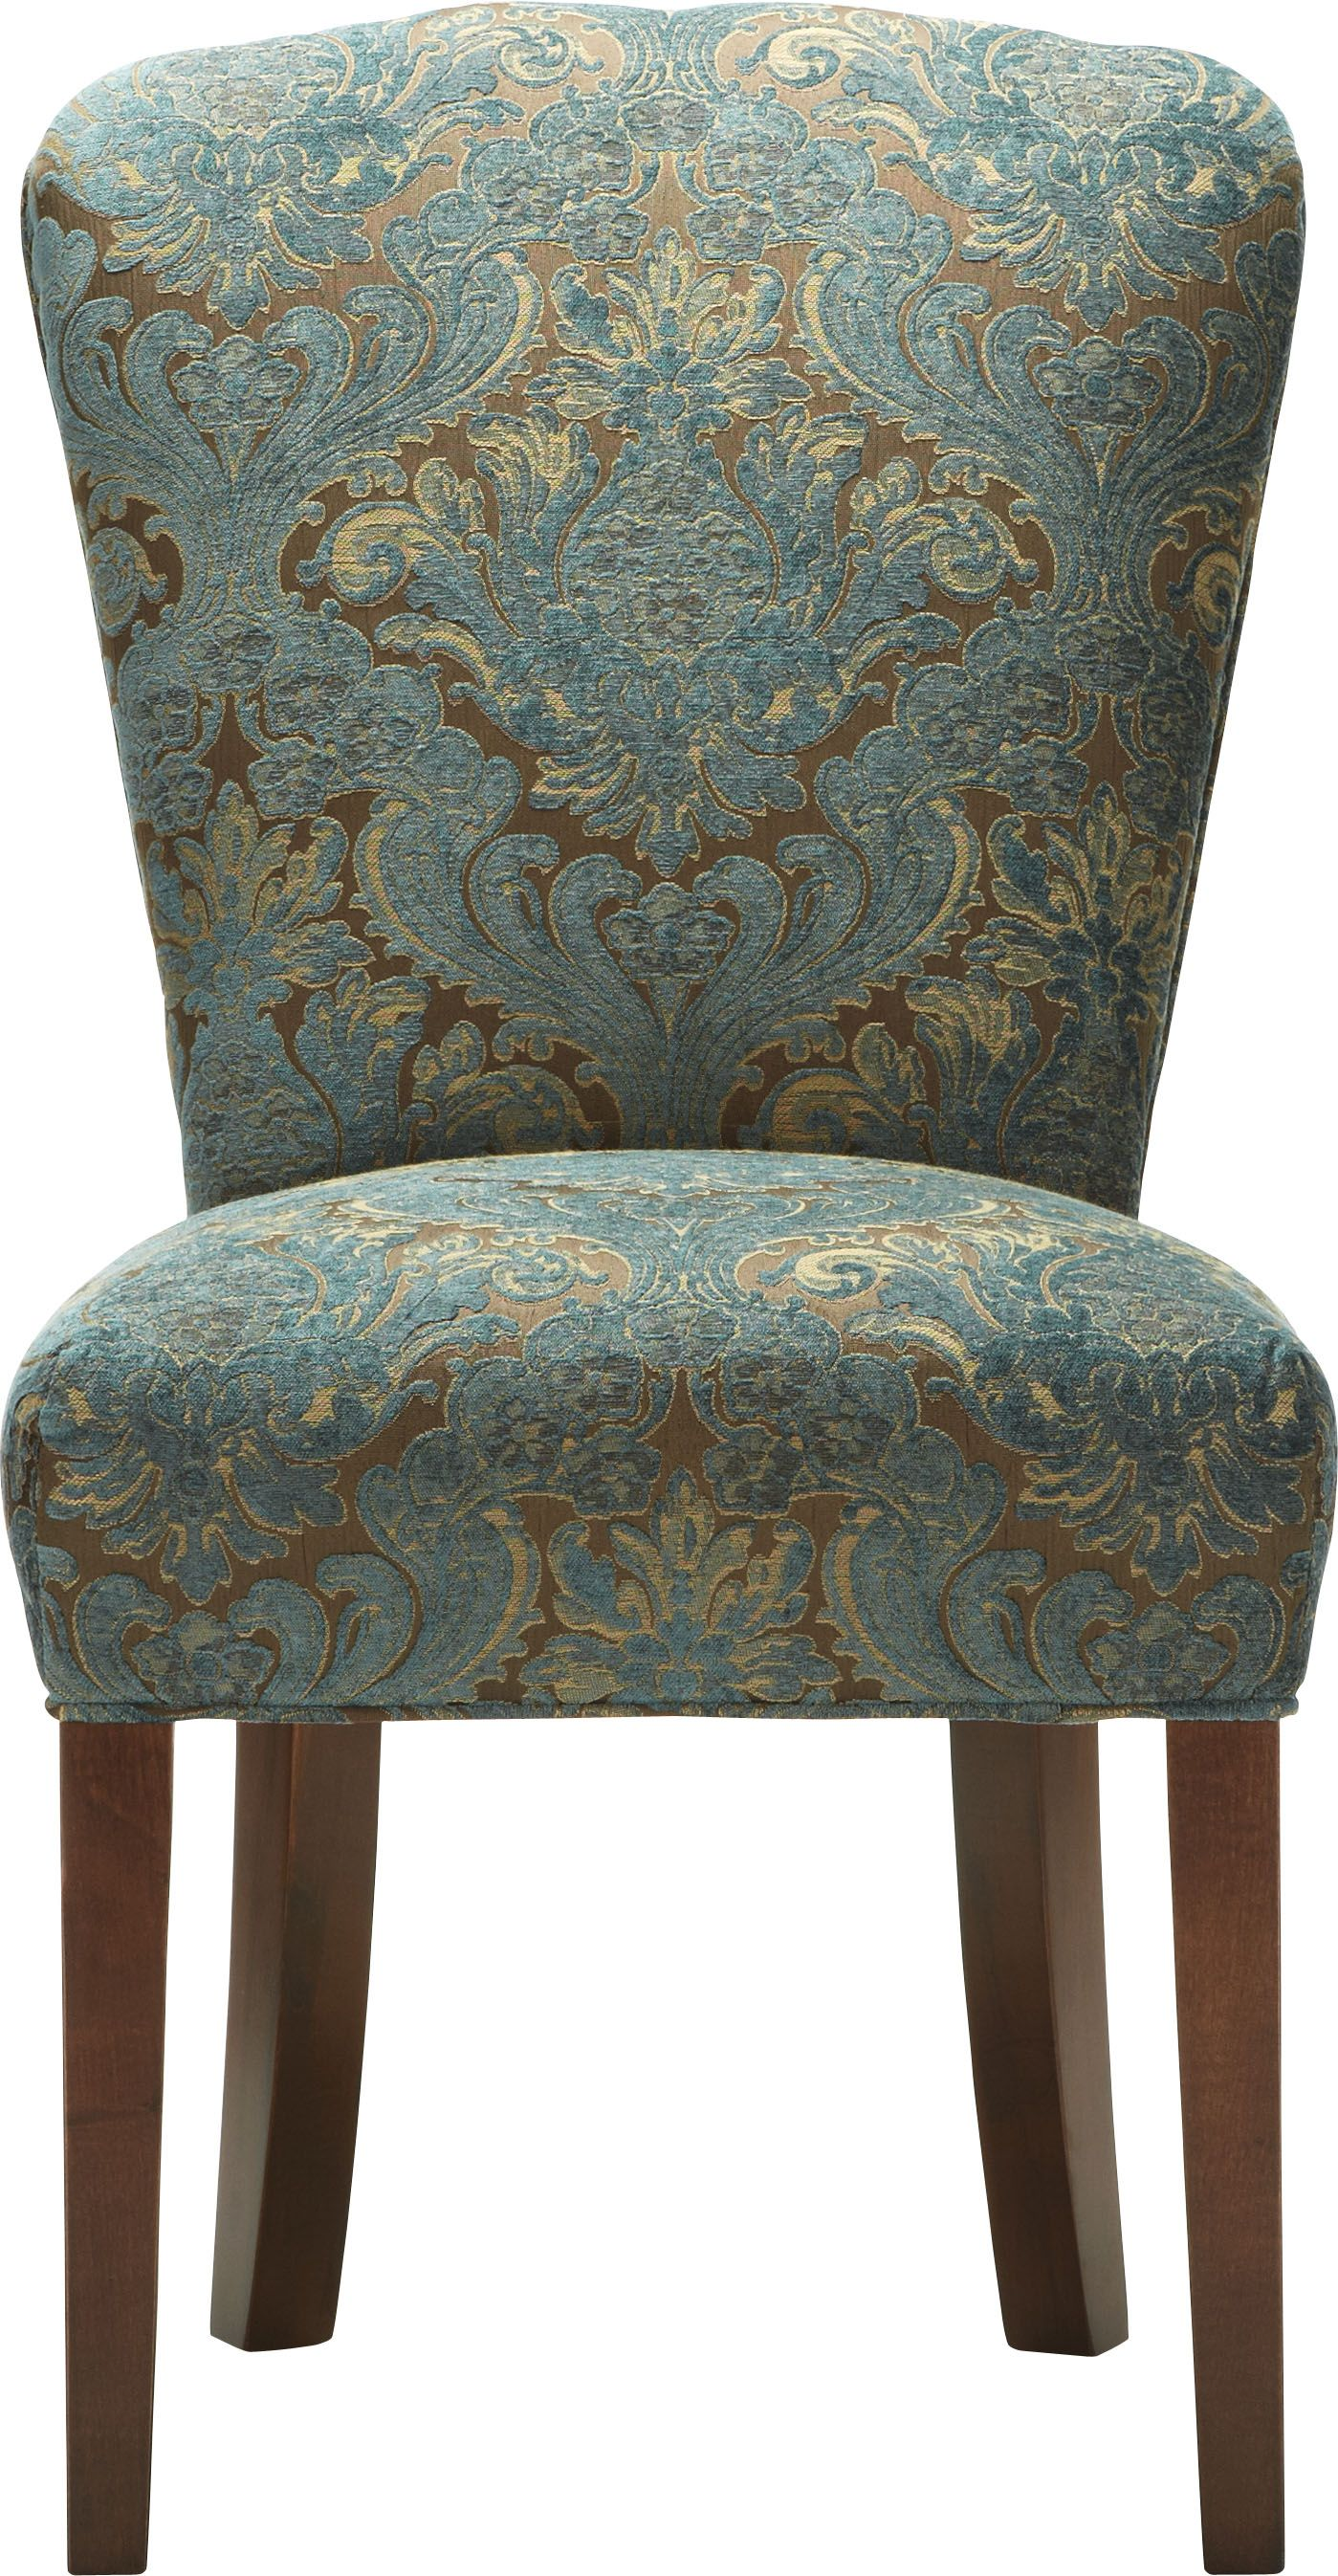 majestic looking gray upholstered dining chairs. Kitchen and Dining Room Furniture Stately dinner seating  The Harman Chair in Arhaus blue